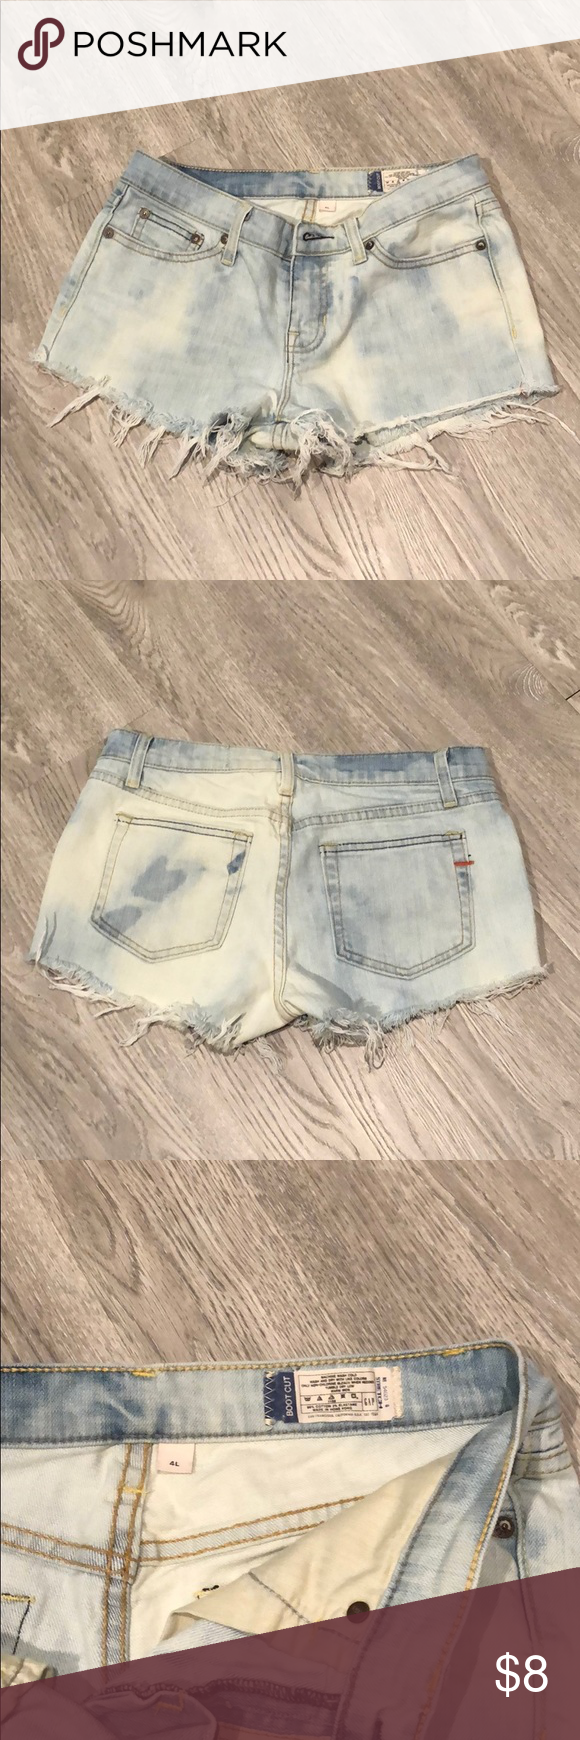 Gap Denim Cutoff Shorts Gap Denim Cutoff Shorts. These were pants and I cut into shorts and bleached them.   material: 98% cotton, 2% elastane GAP Shorts Jean Shorts #denimcutoffshorts Gap Denim Cutoff Shorts Gap Denim Cutoff Shorts. These were pants and I cut into shorts and bleached them.   material: 98% cotton, 2% elastane GAP Shorts Jean Shorts #denimcutoffshorts Gap Denim Cutoff Shorts Gap Denim Cutoff Shorts. These were pants and I cut into shorts and bleached them.   material: 98% cotton, #denimcutoffshorts